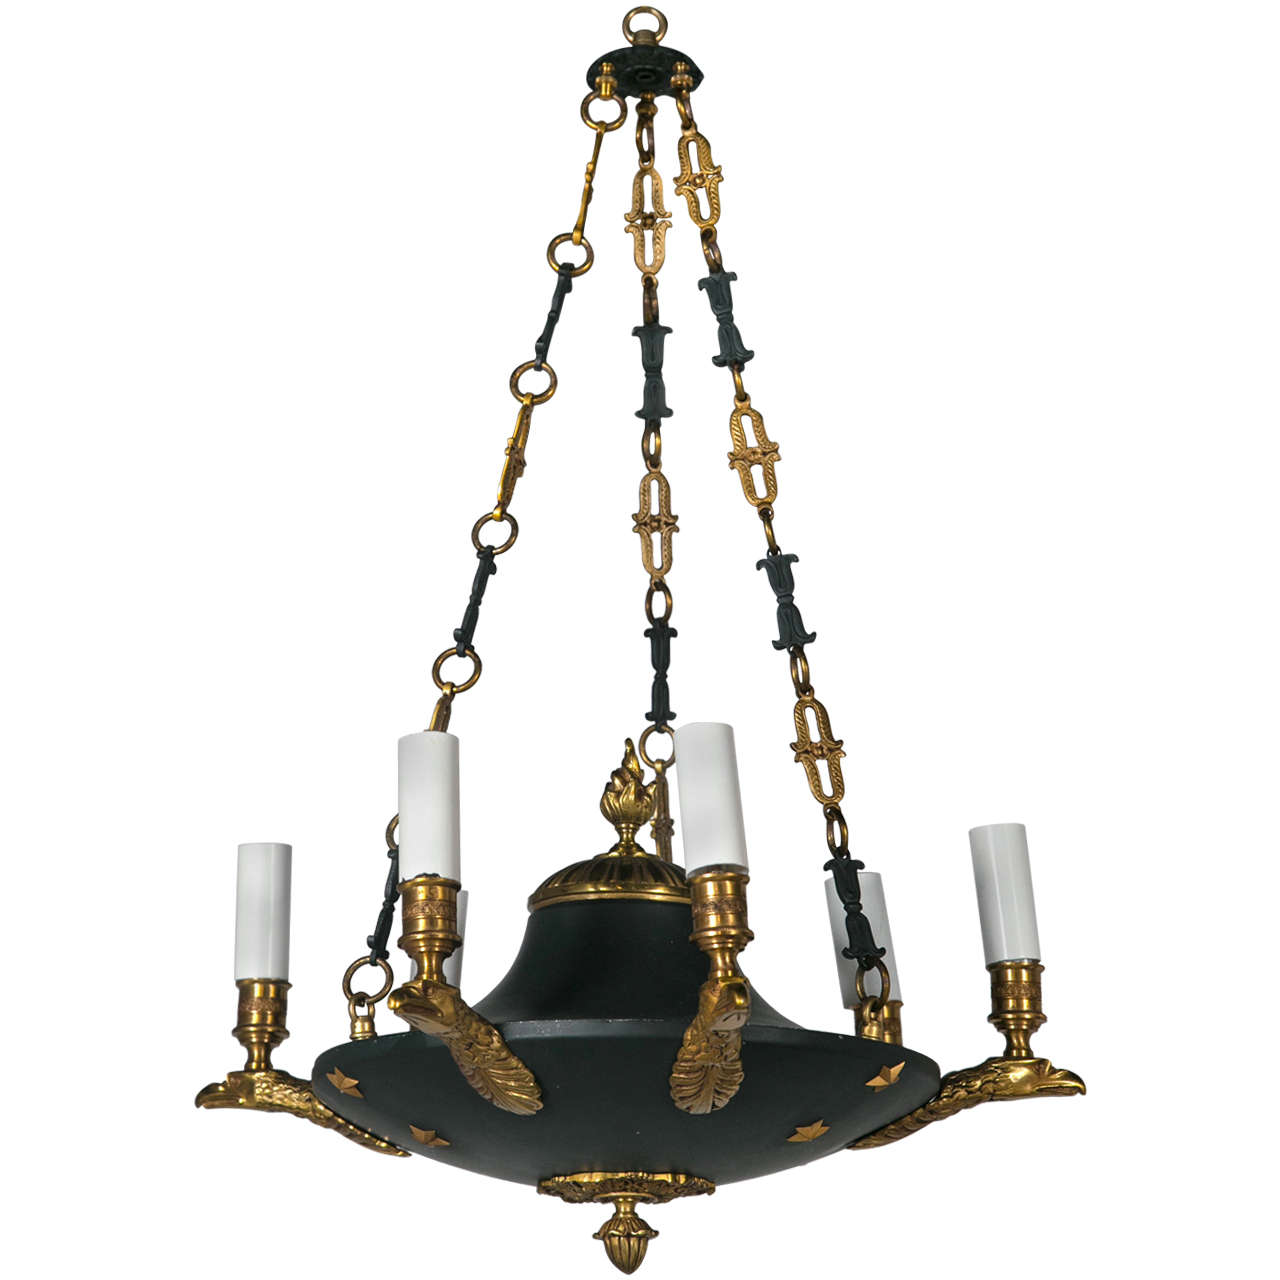 French empire chandelier circa 1900 for sale at 1stdibs - Circa lighting chandeliers ...